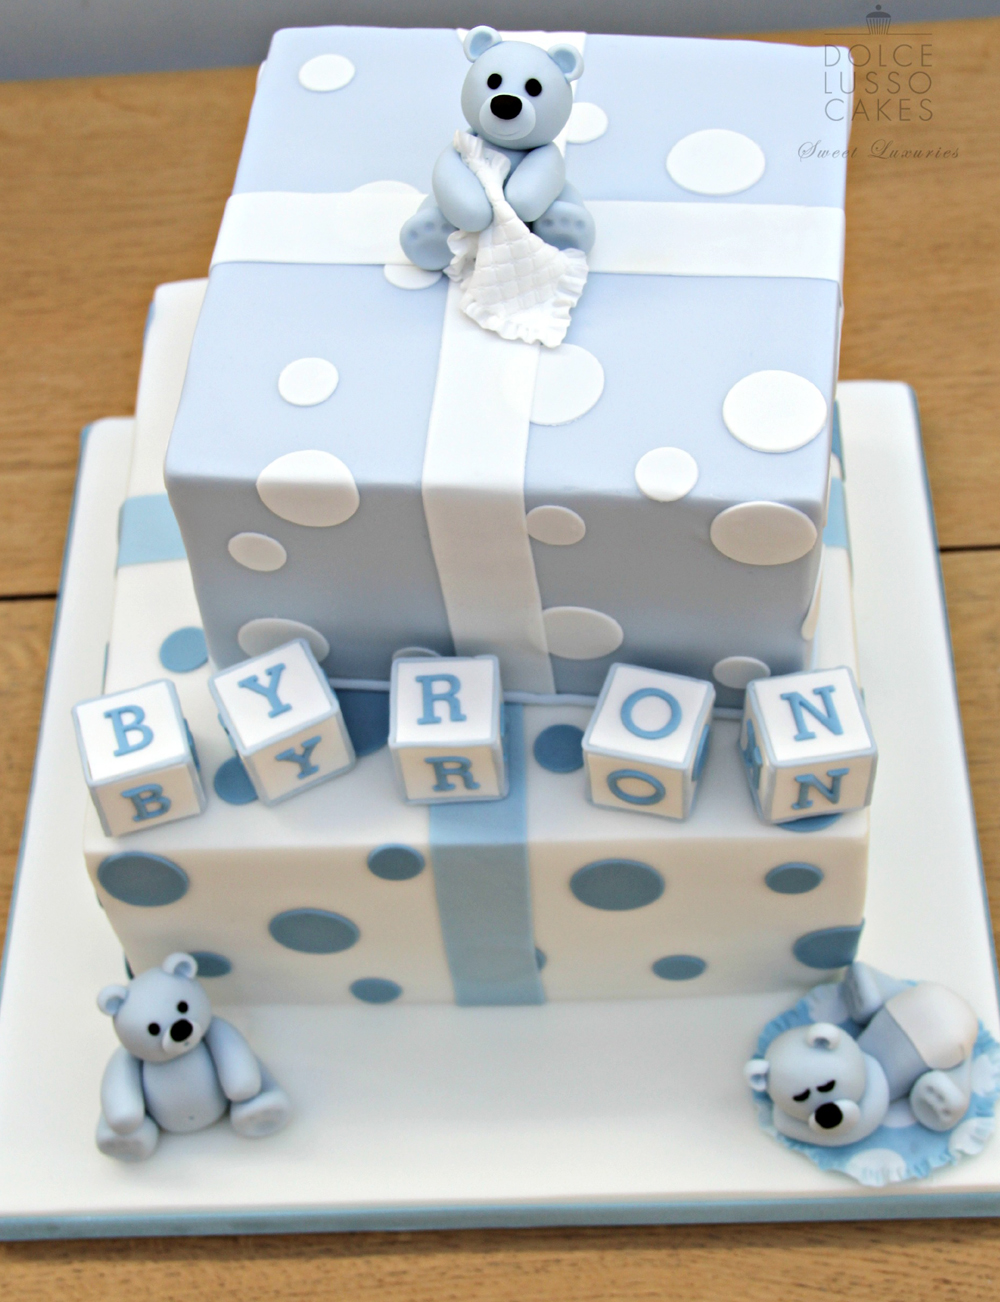 Dolce Lusso Cakes blue bear christening celebration cake